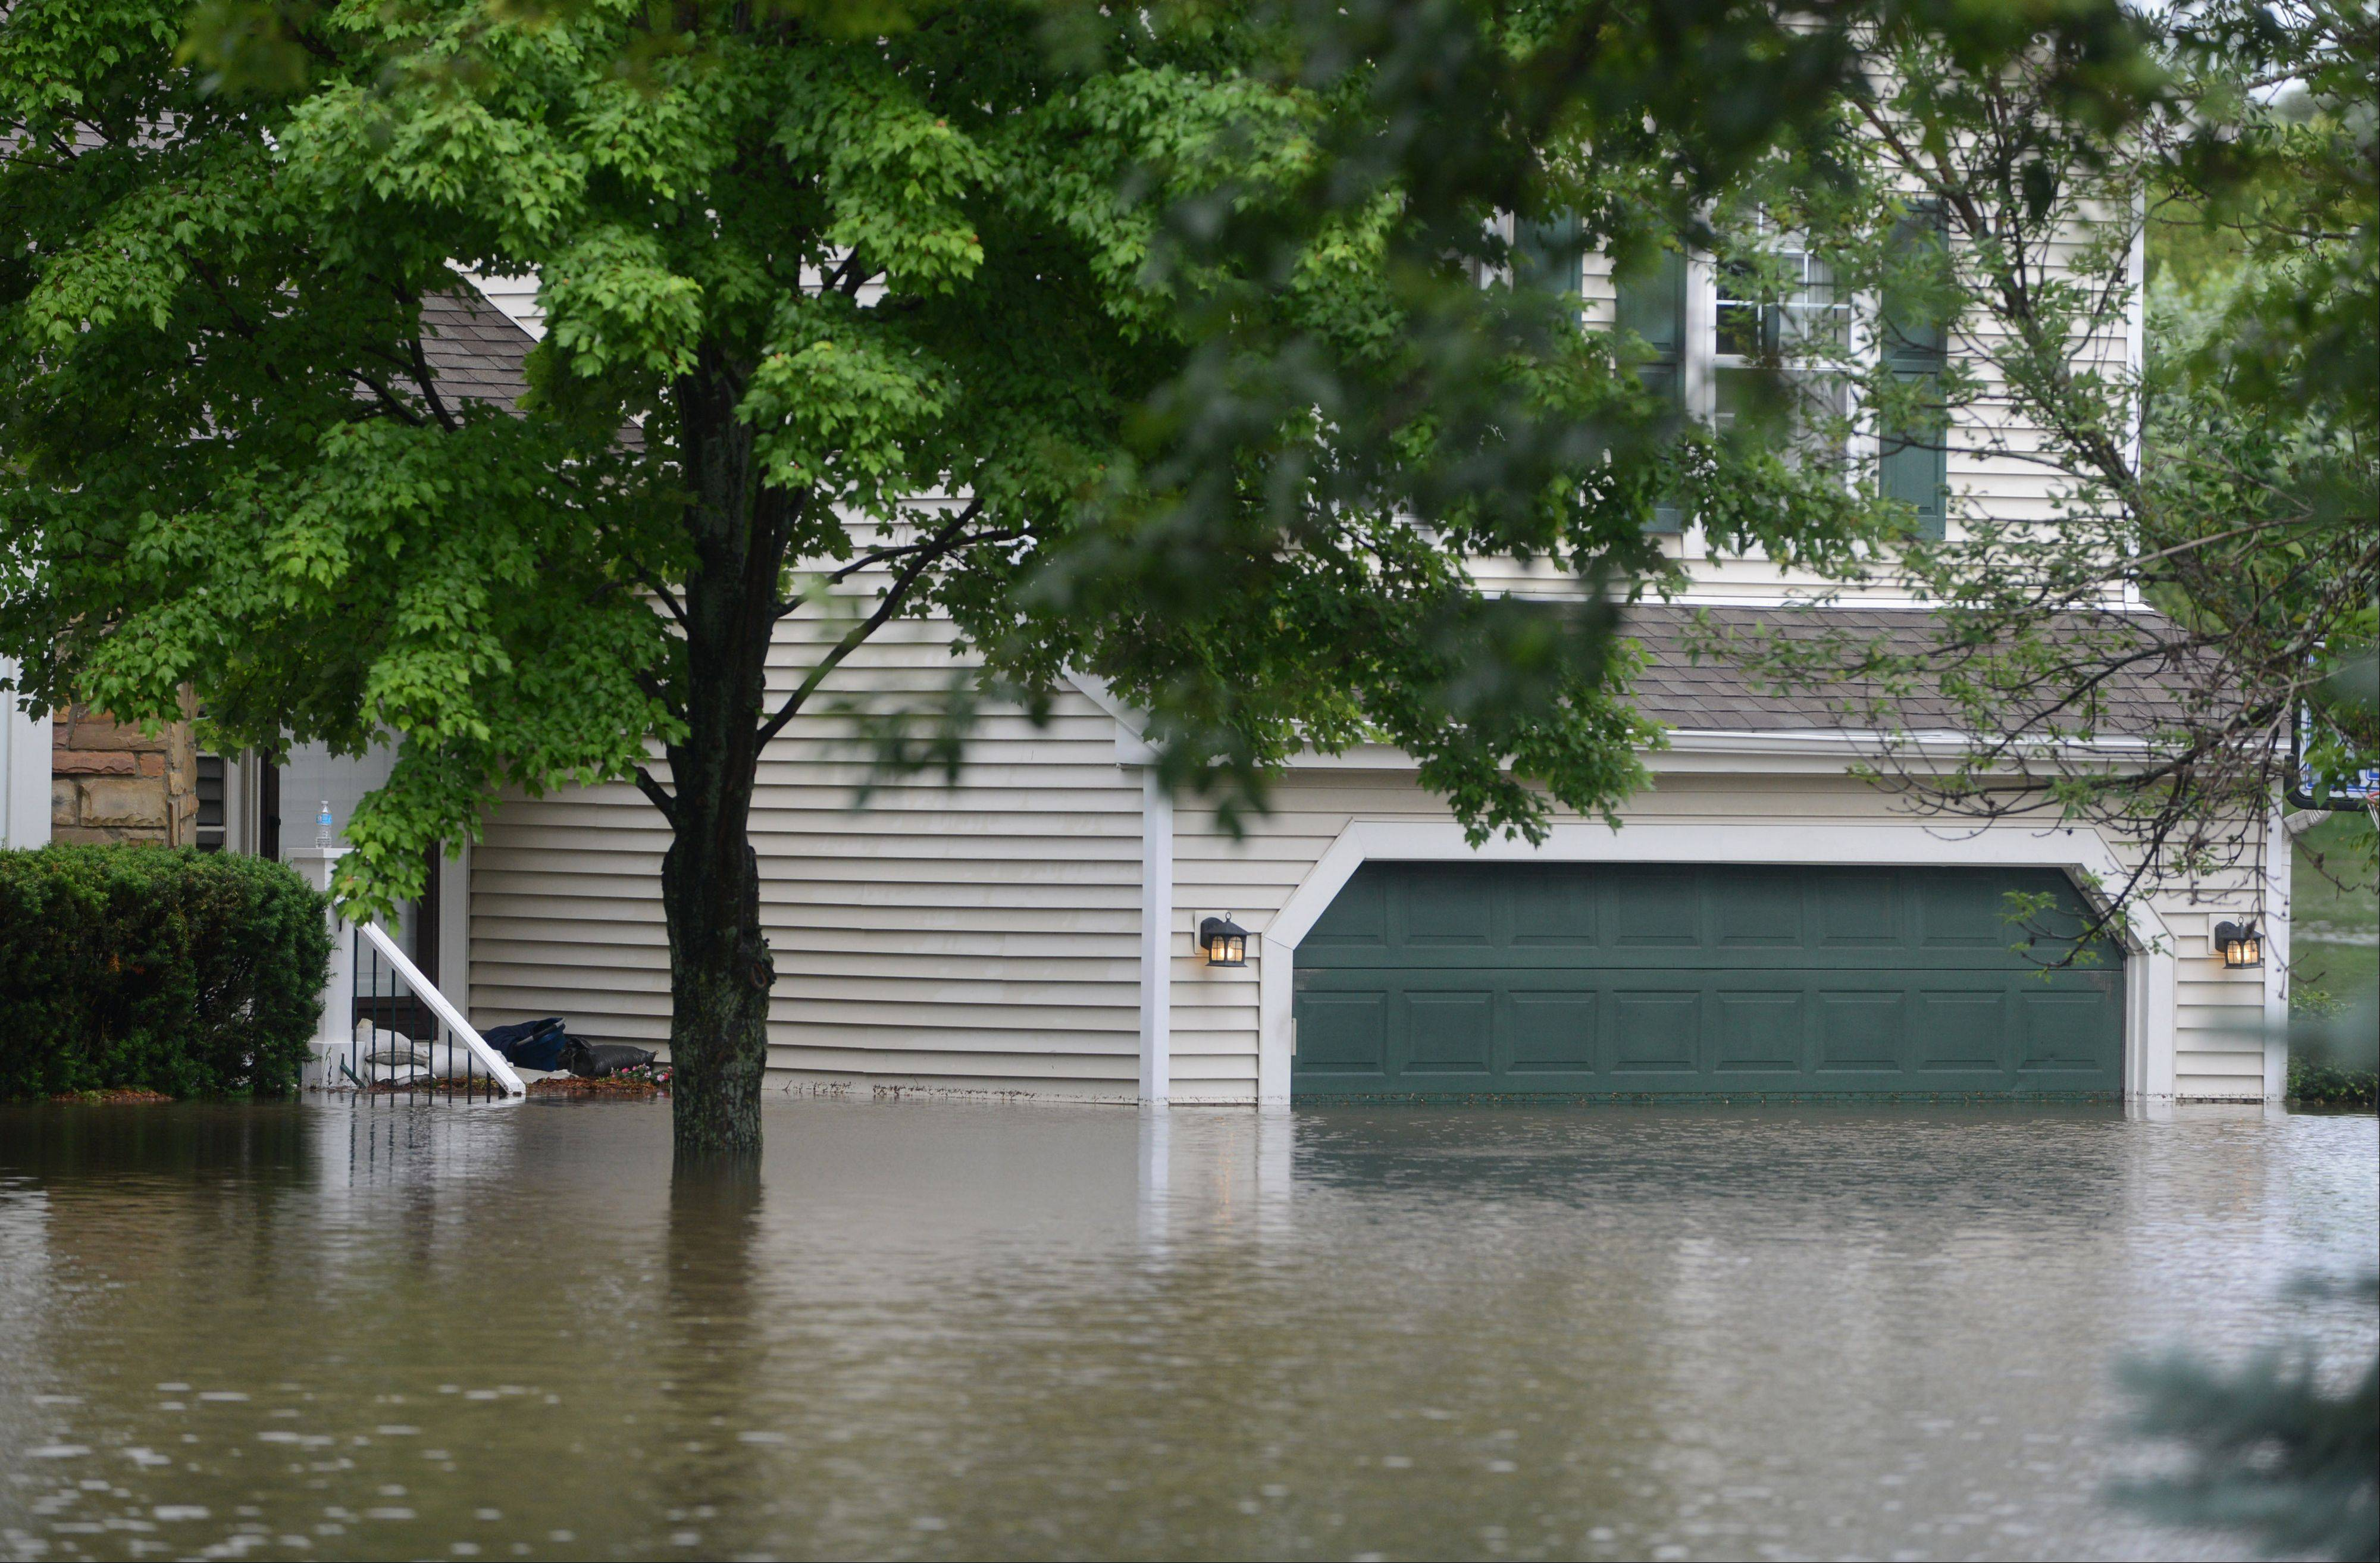 Lake Zurich officials: Overall, June flood response was good